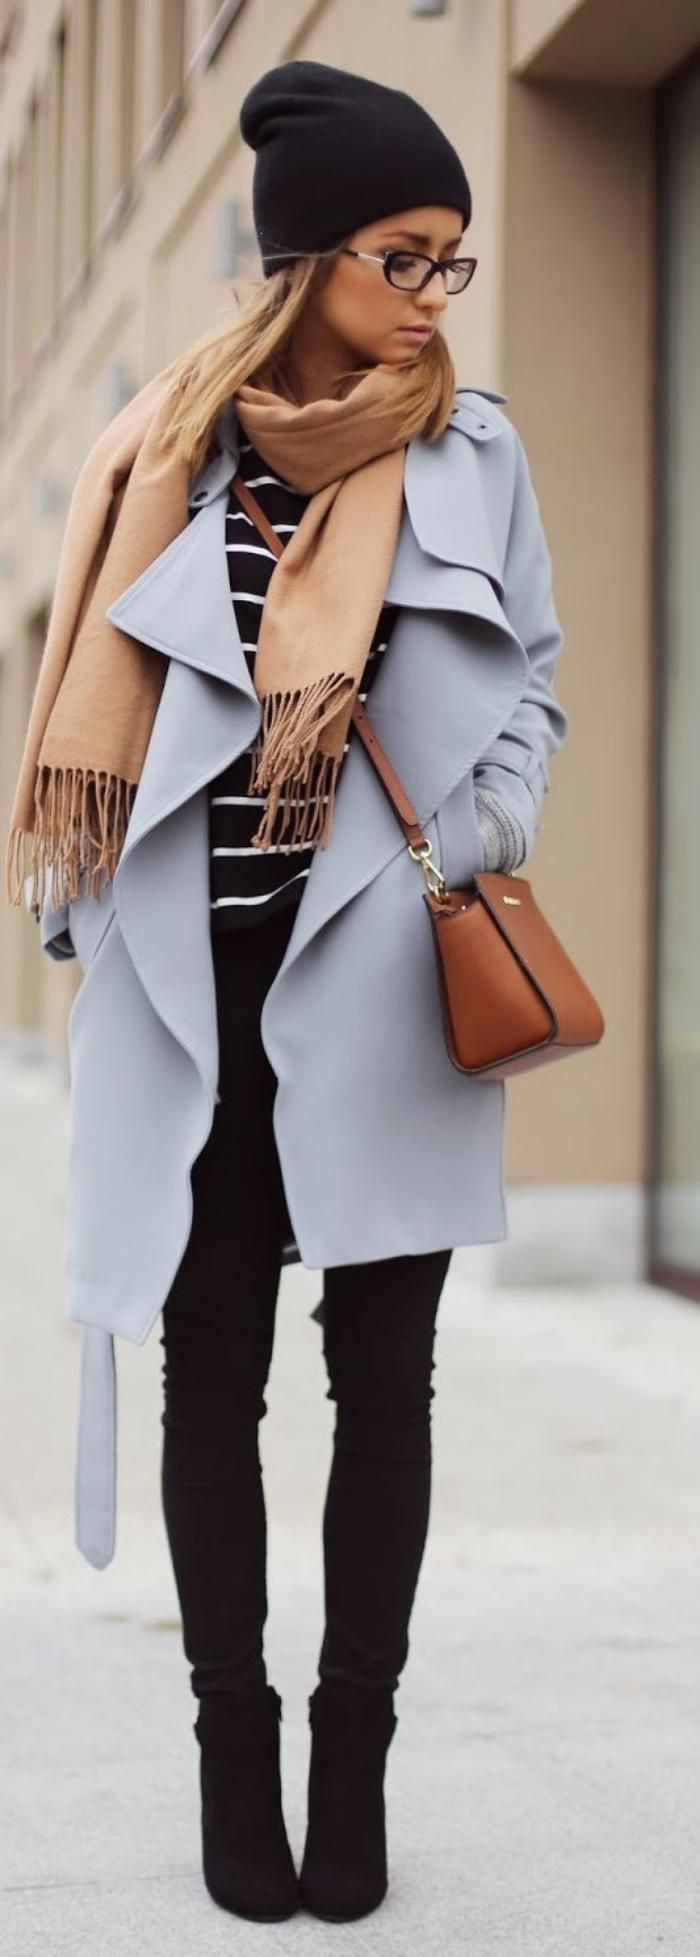 best tenues classes images on Pinterest Outfit ideas Casual